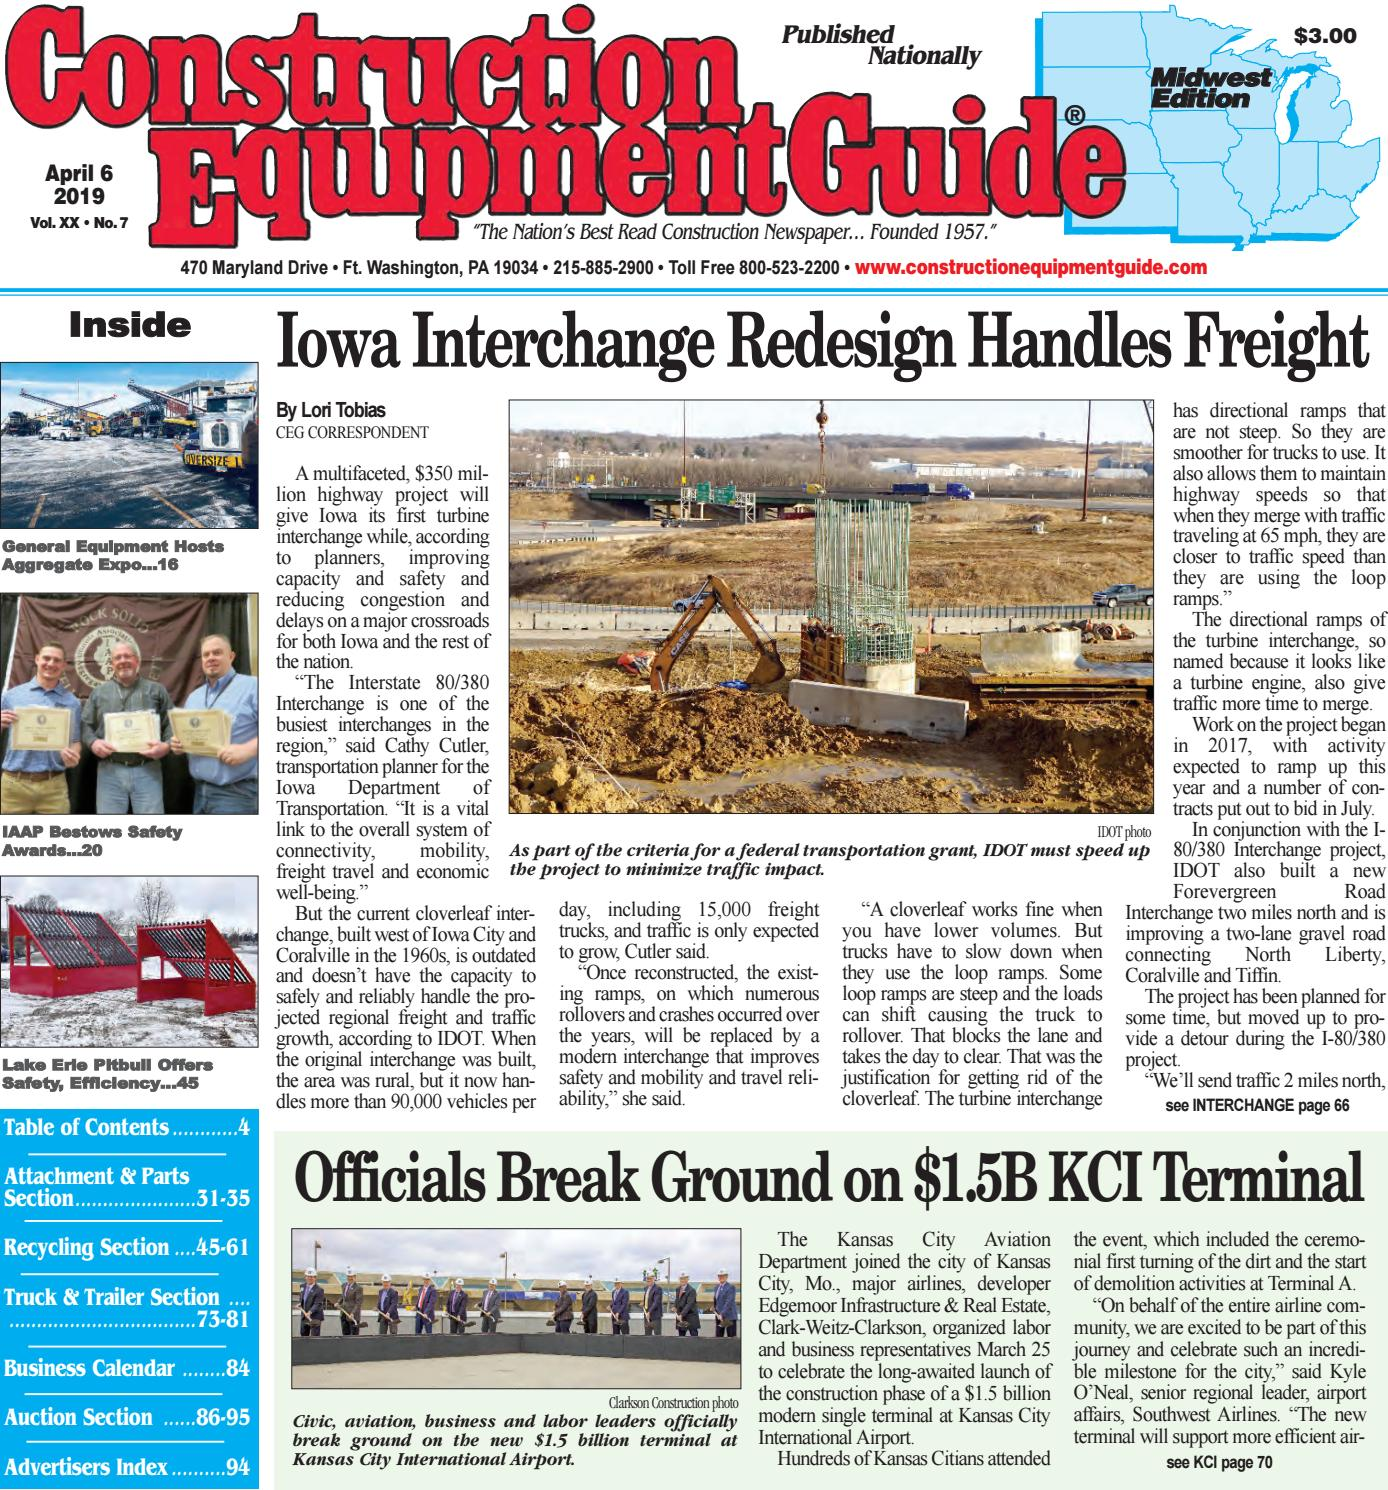 Midwest 7 April 6, 2019 by Construction Equipment Guide - issuu